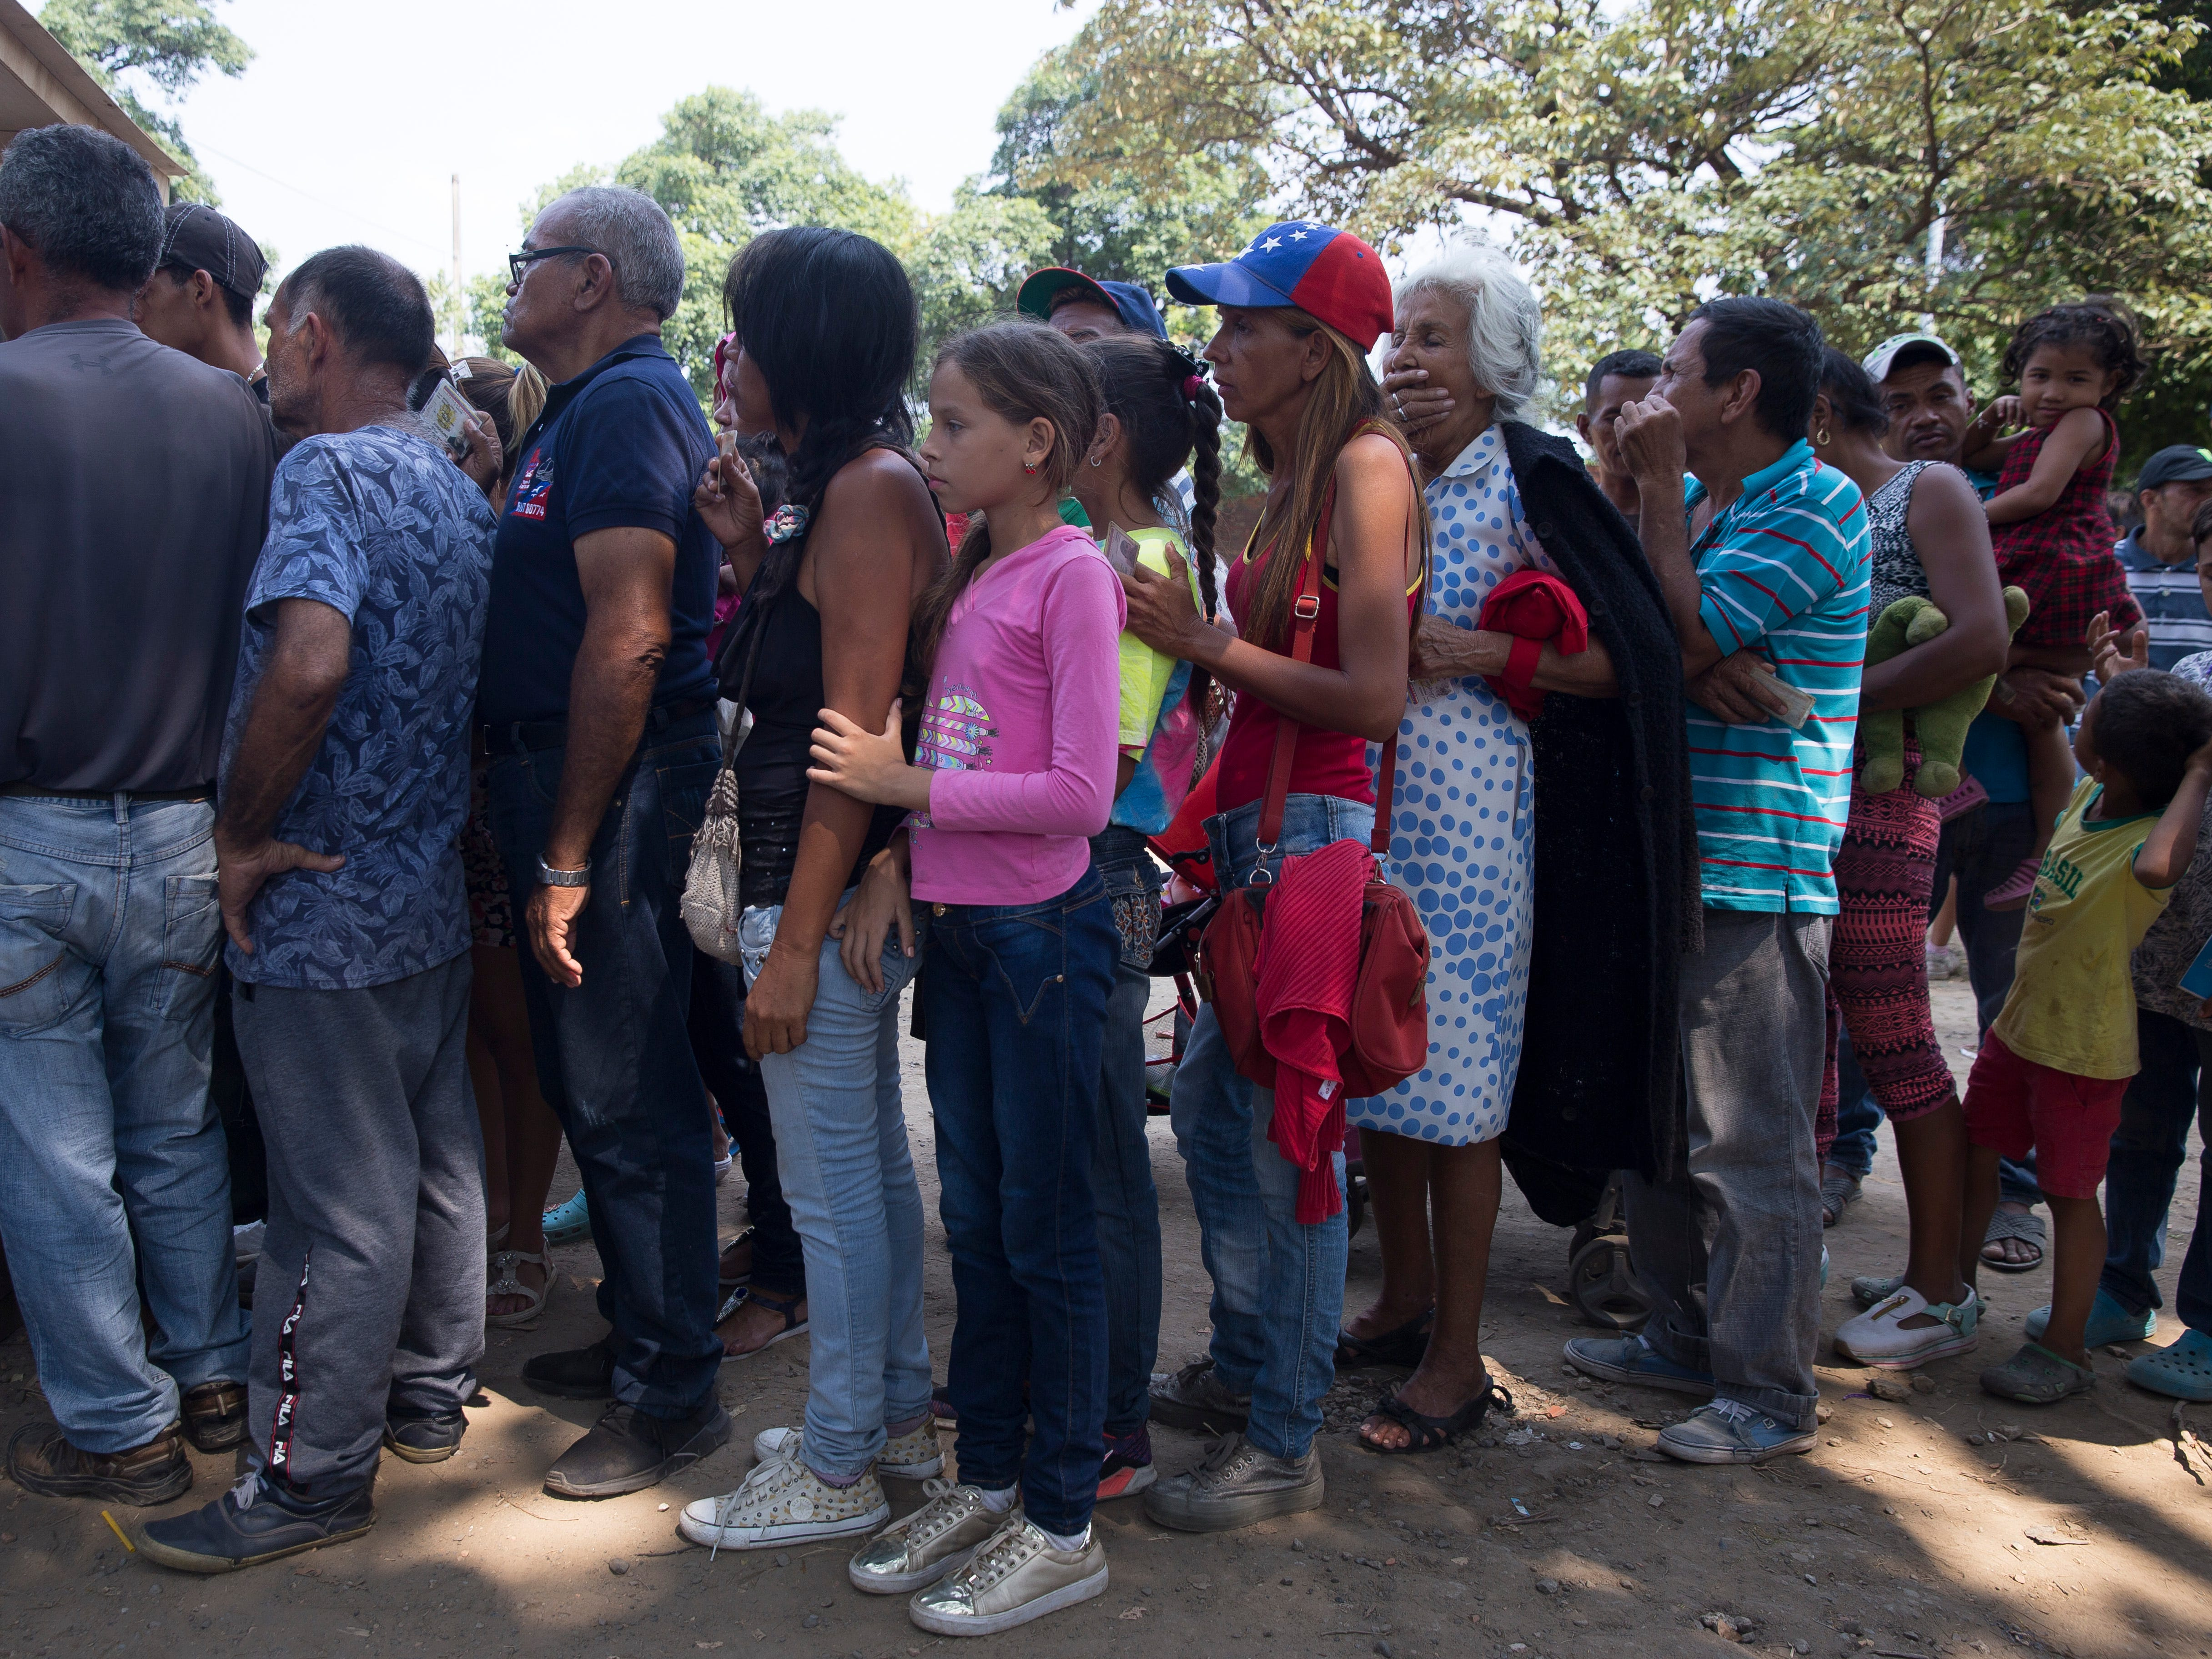 Migrants push together as they wait to enter a soup kitchen along the Colombia-Venezuela border in Cœcuta, Colombia on Feb. 6, 2019.